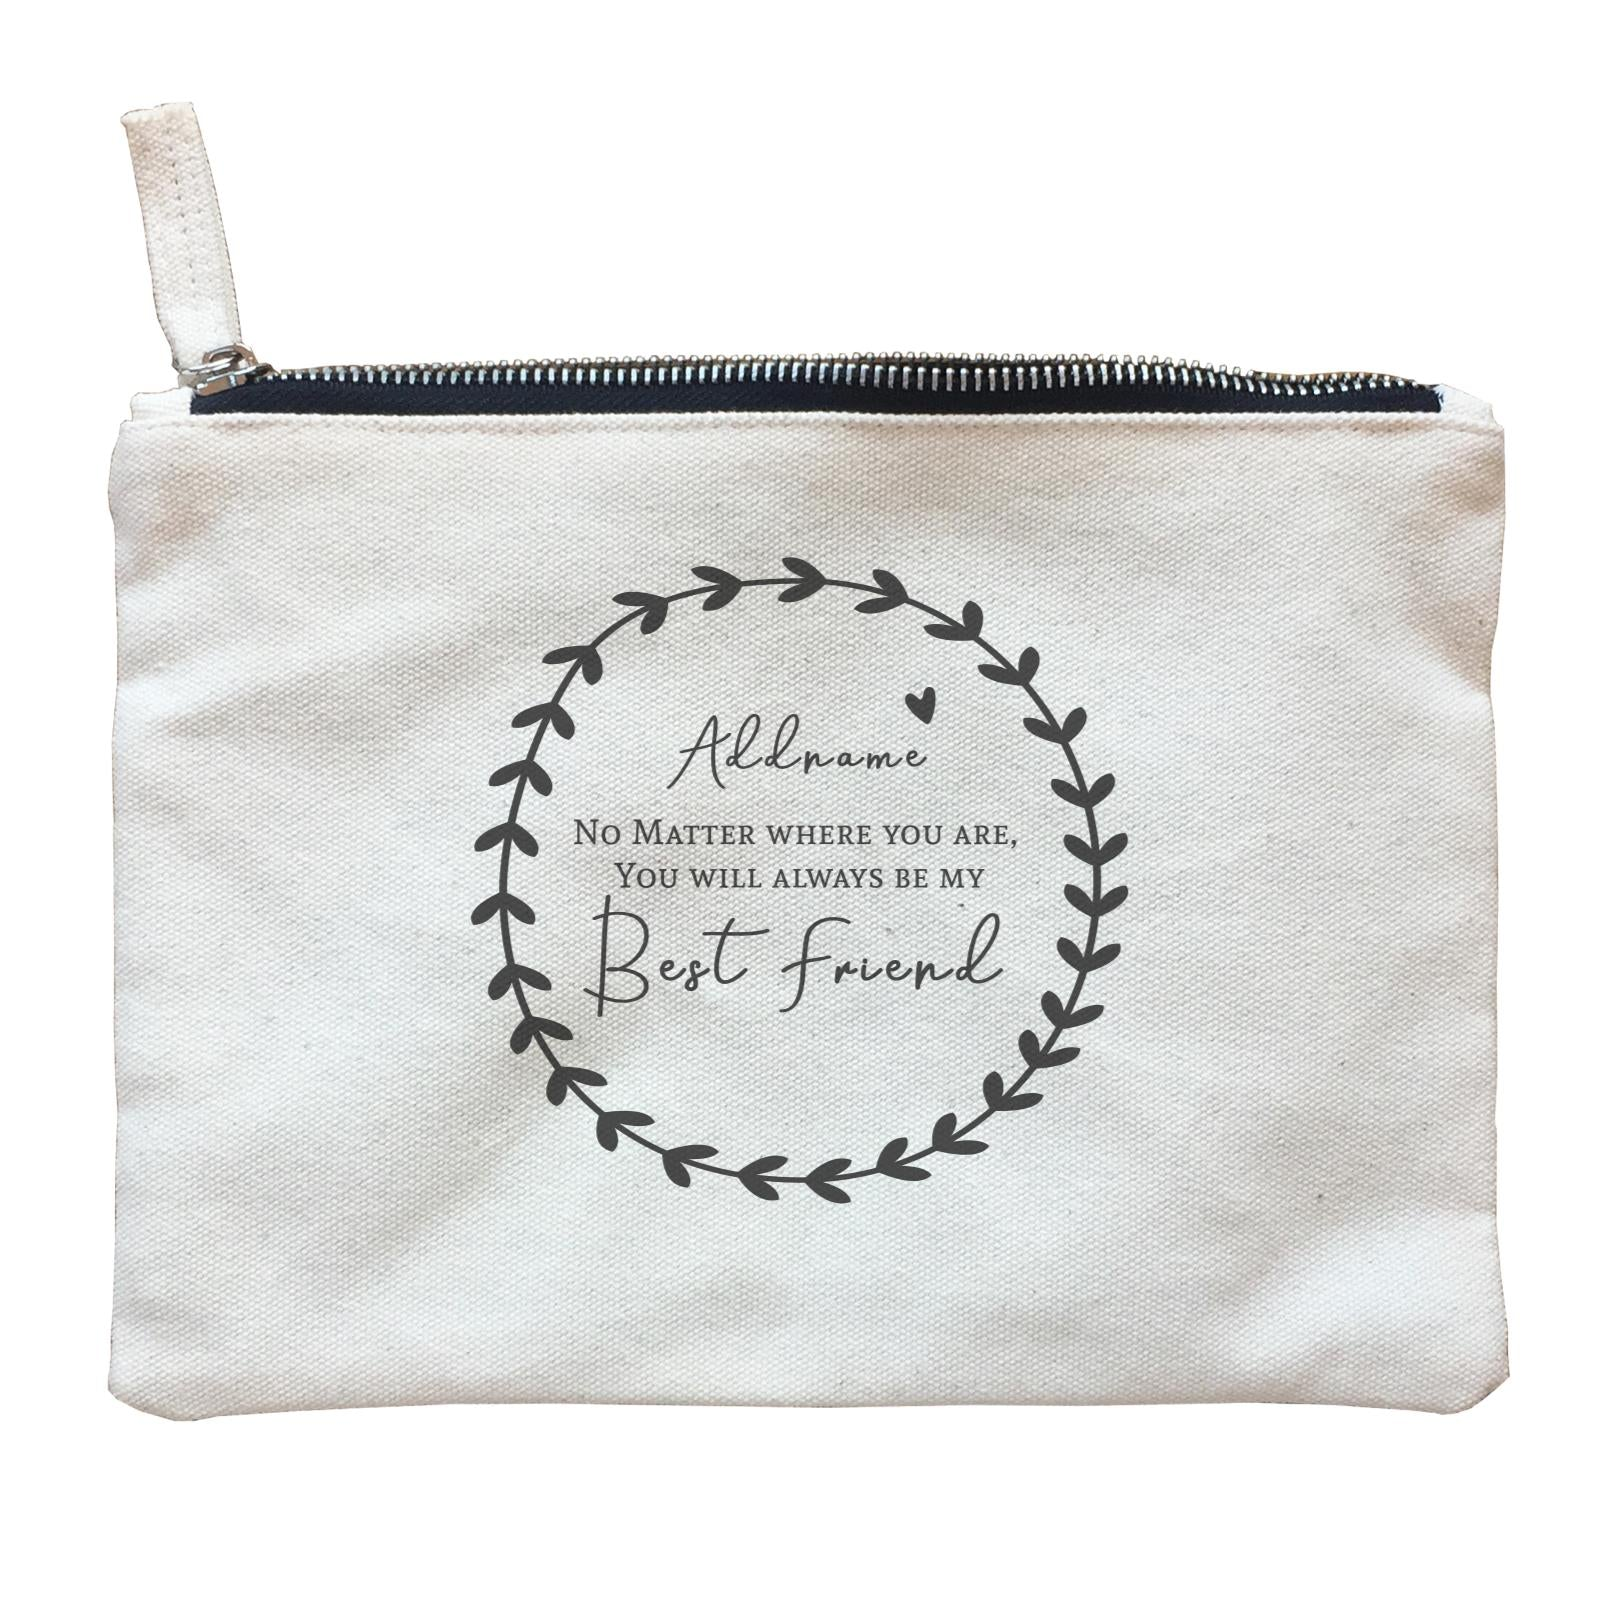 Best Friends Quotes Wreath Addname You Will Always Be My Best Friend Zipper Pouch